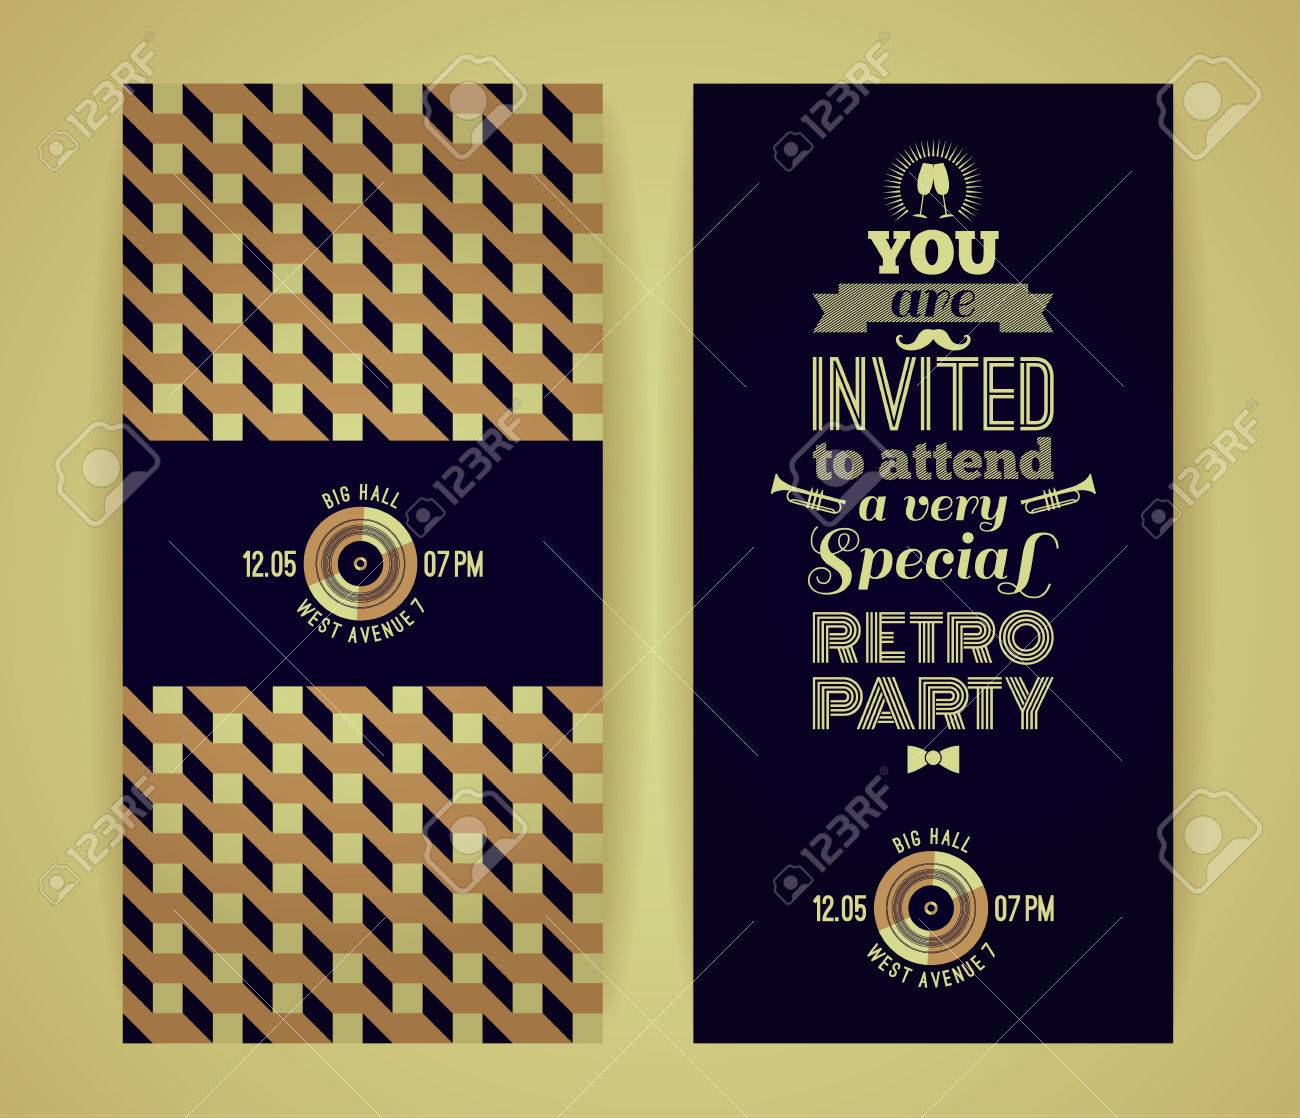 Invitation to retro party vintage retro geometric background invitation to retro party vintage retro geometric background hipster style vector illustration stopboris Choice Image